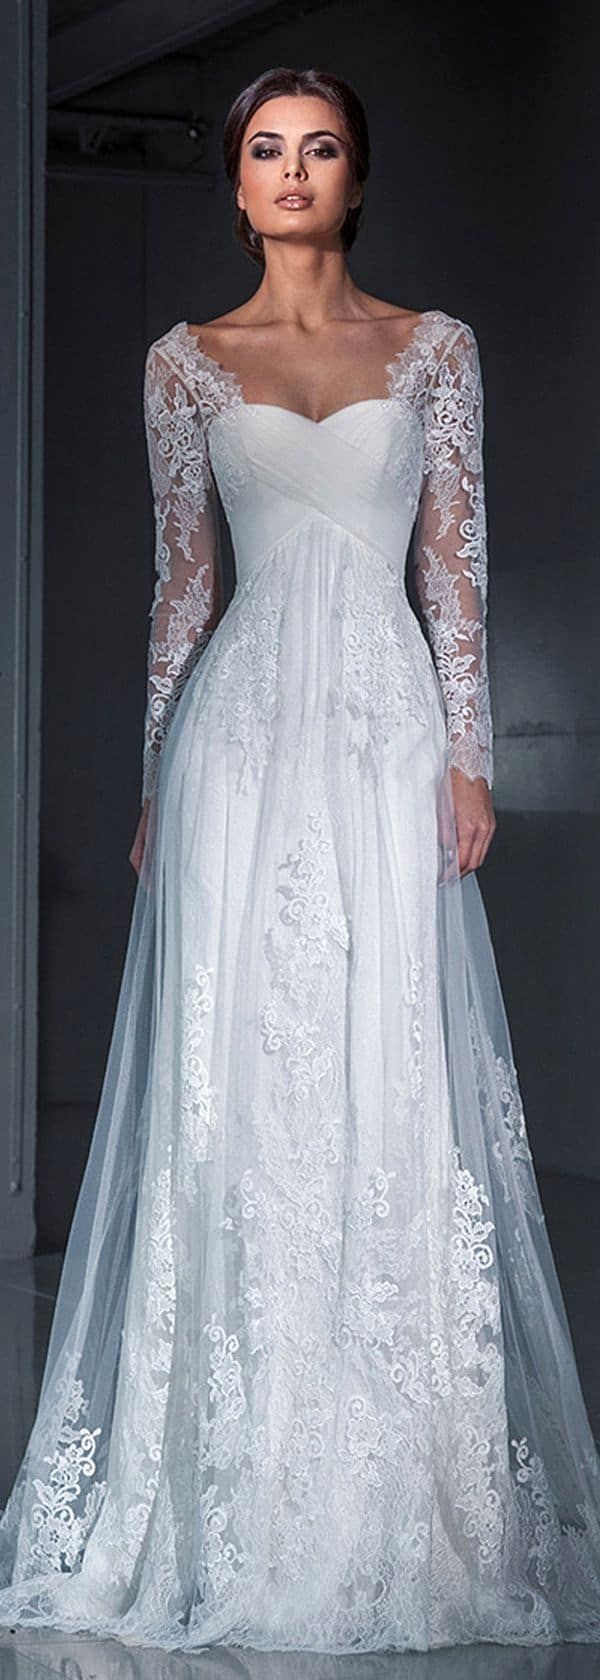 Top 50 Gorgeous Wedding Dresses with Long Sleeves - wedding dresses ...